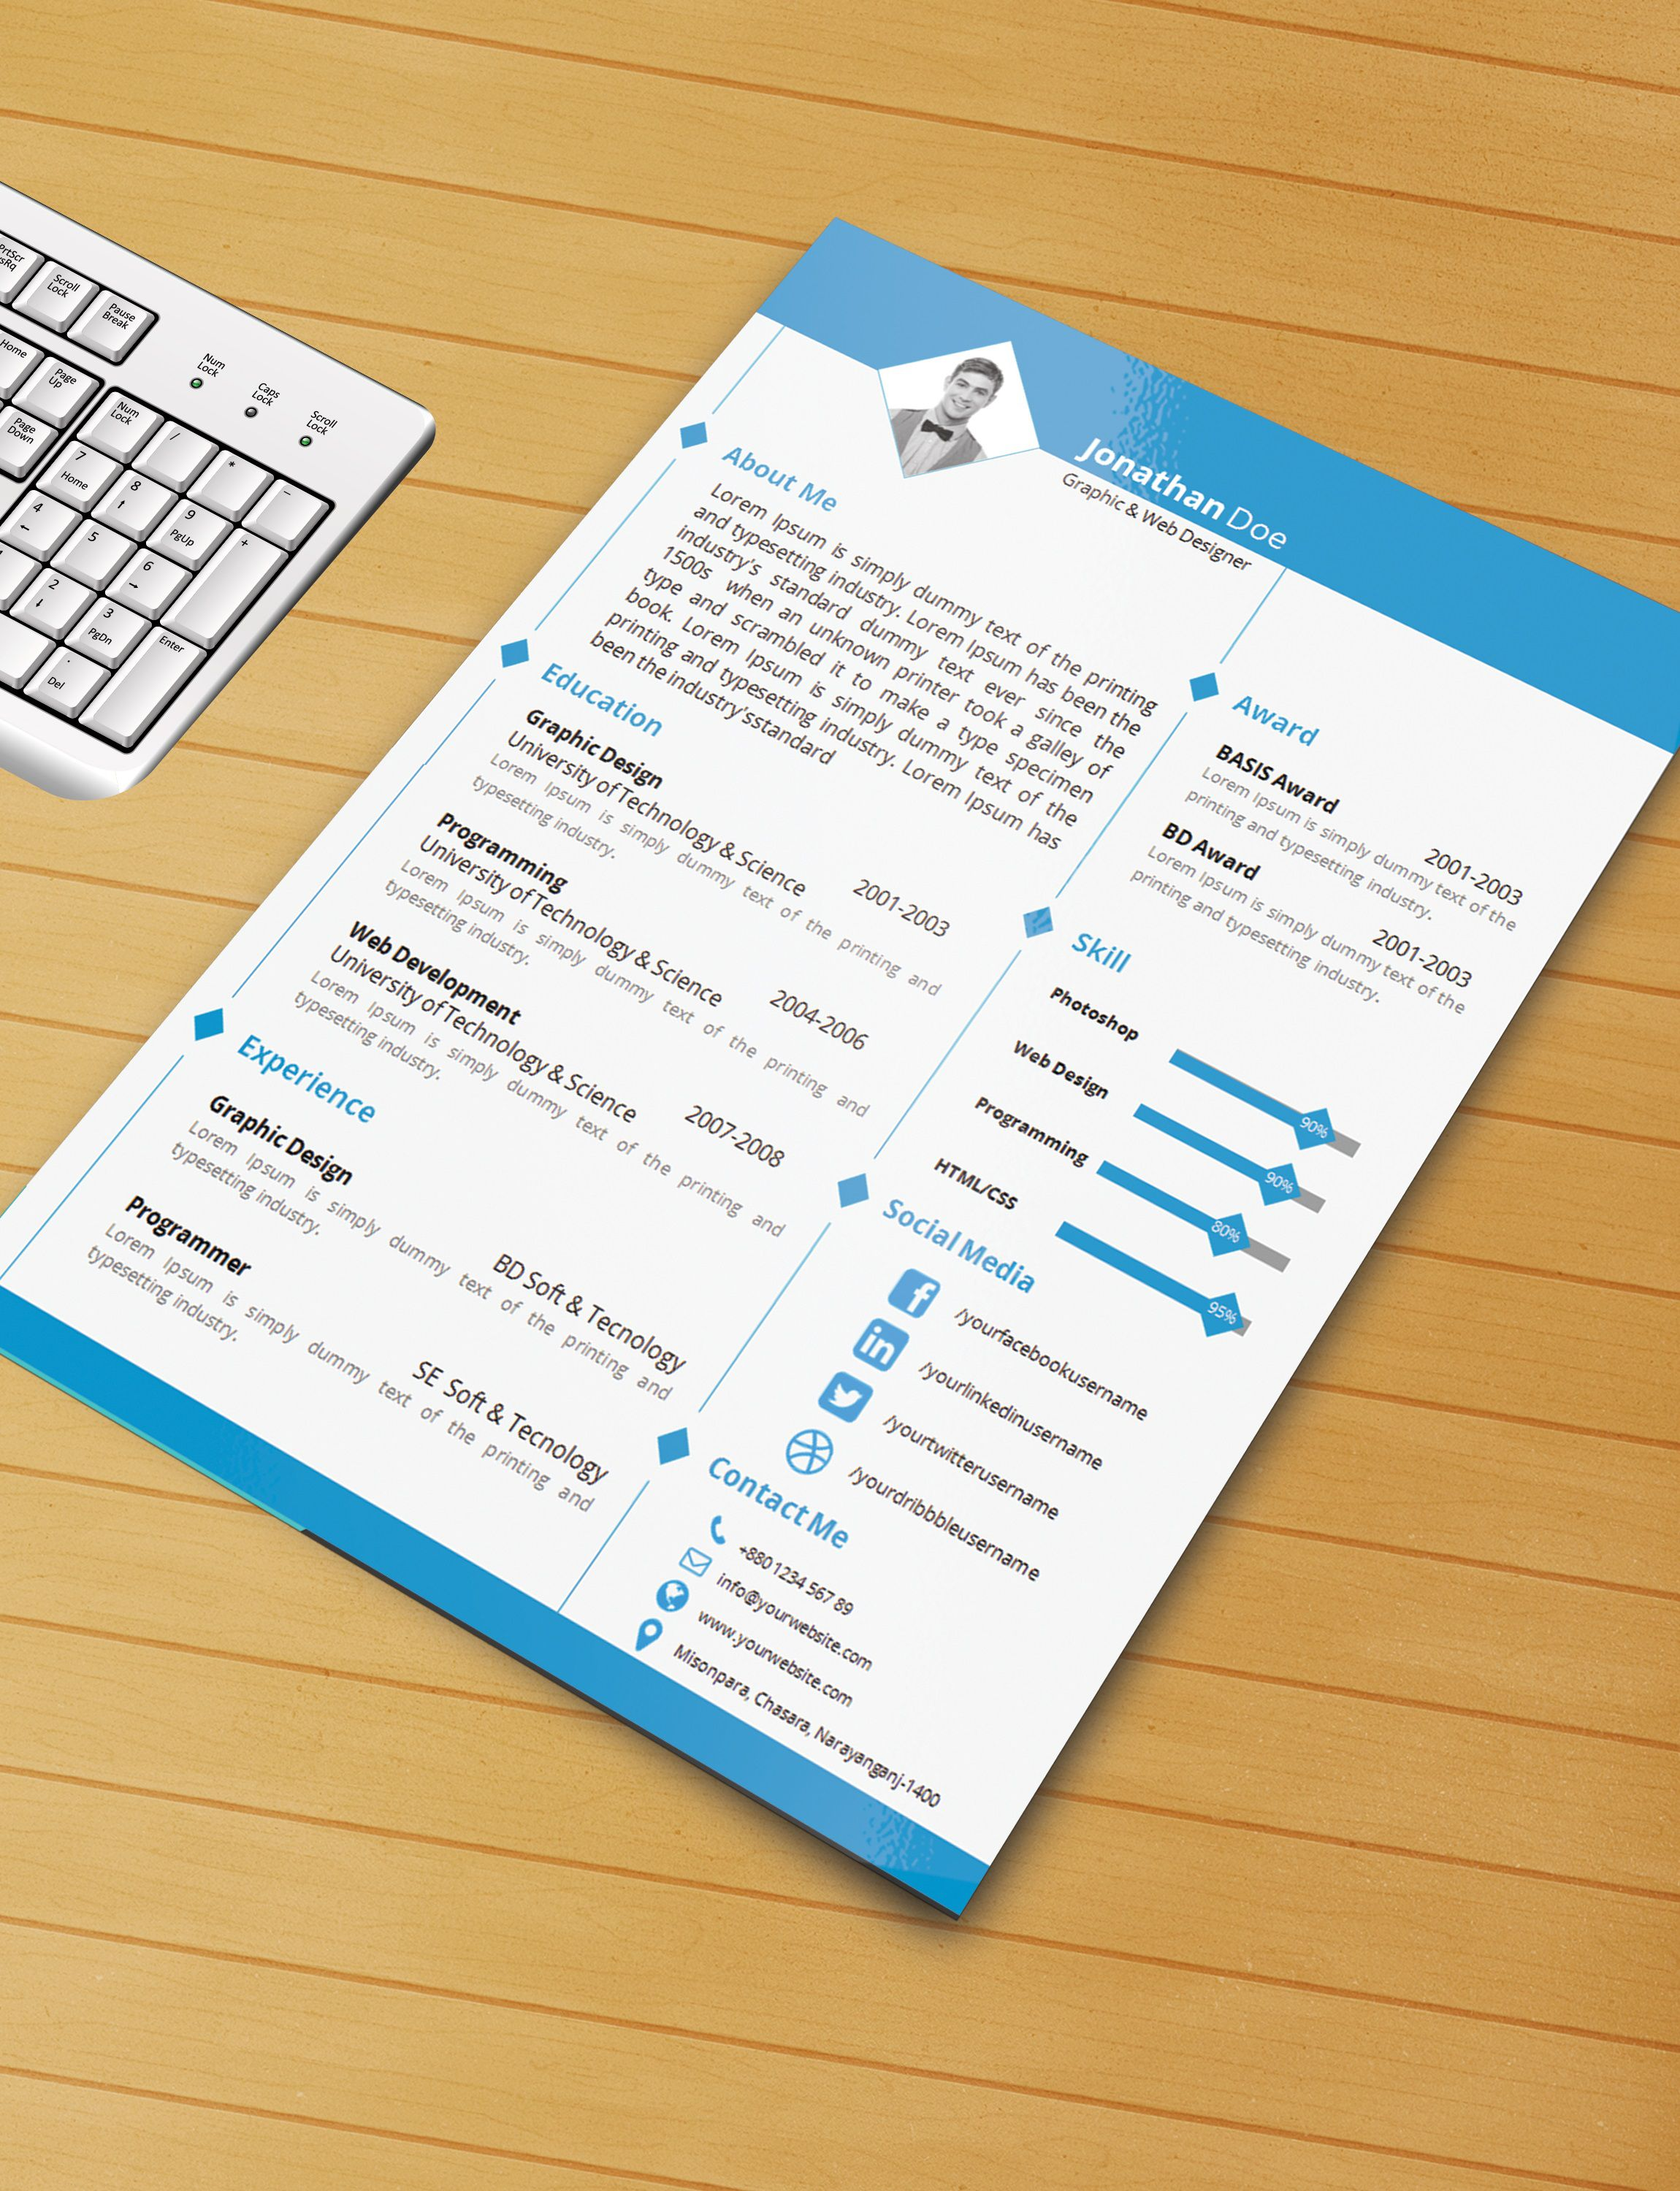 004 Outstanding Microsoft Word Template Download High Definition  2010 Resume Free 2007 Error InvoiceFull